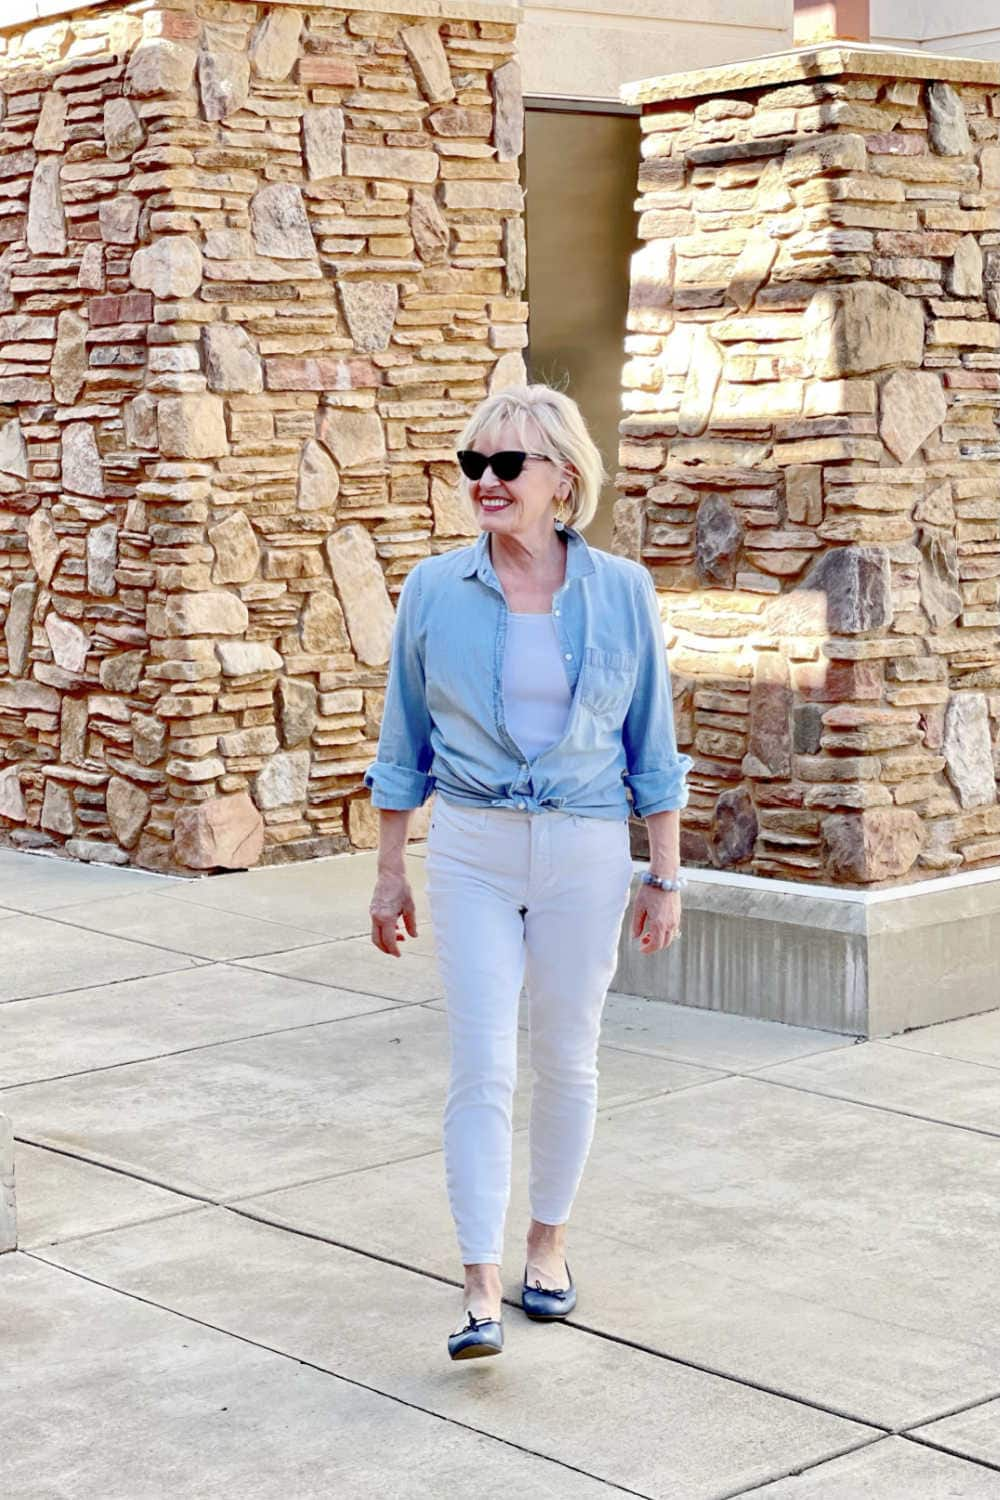 woman walking toward to wearing chambray shirt white jeans and blue shoes